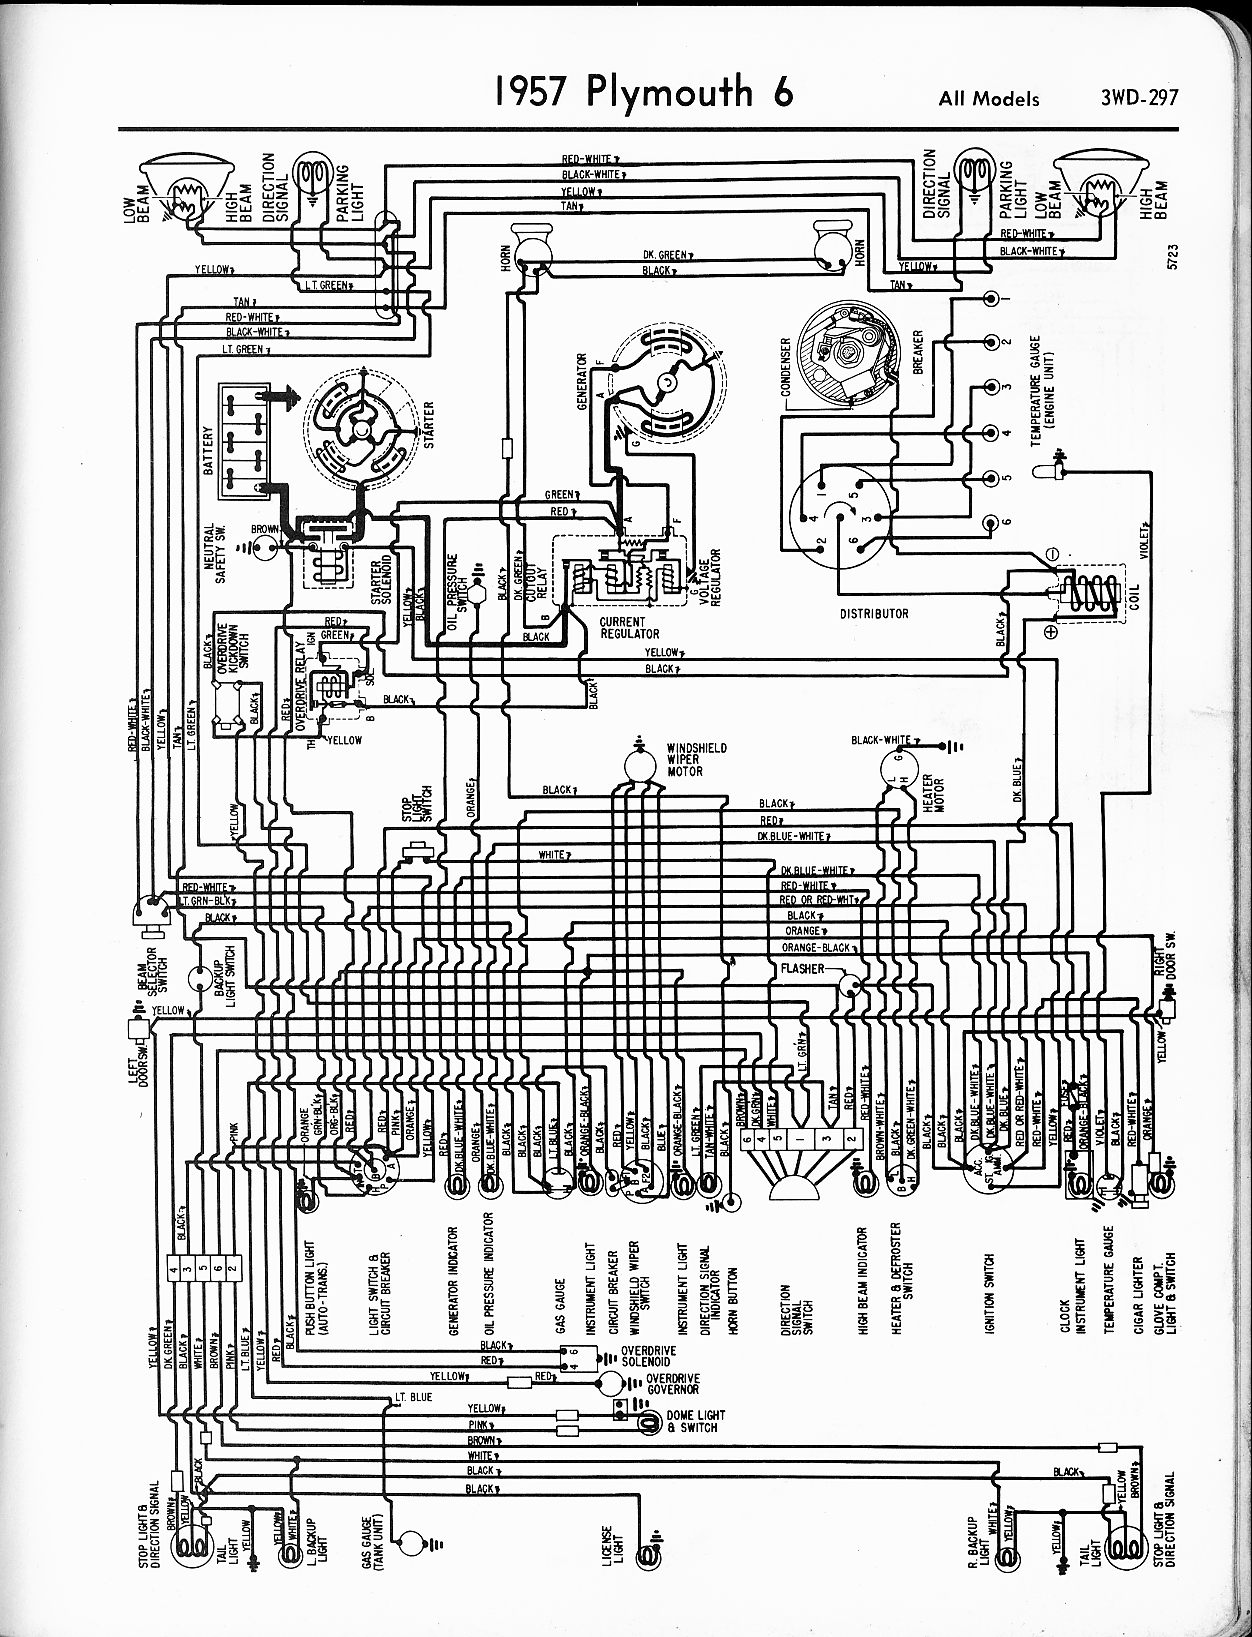 1949 Dodge Coronet Wiring Diagram Libraries Meadowbrook Plymouth Todays1934 Coupe Third Level Ignition